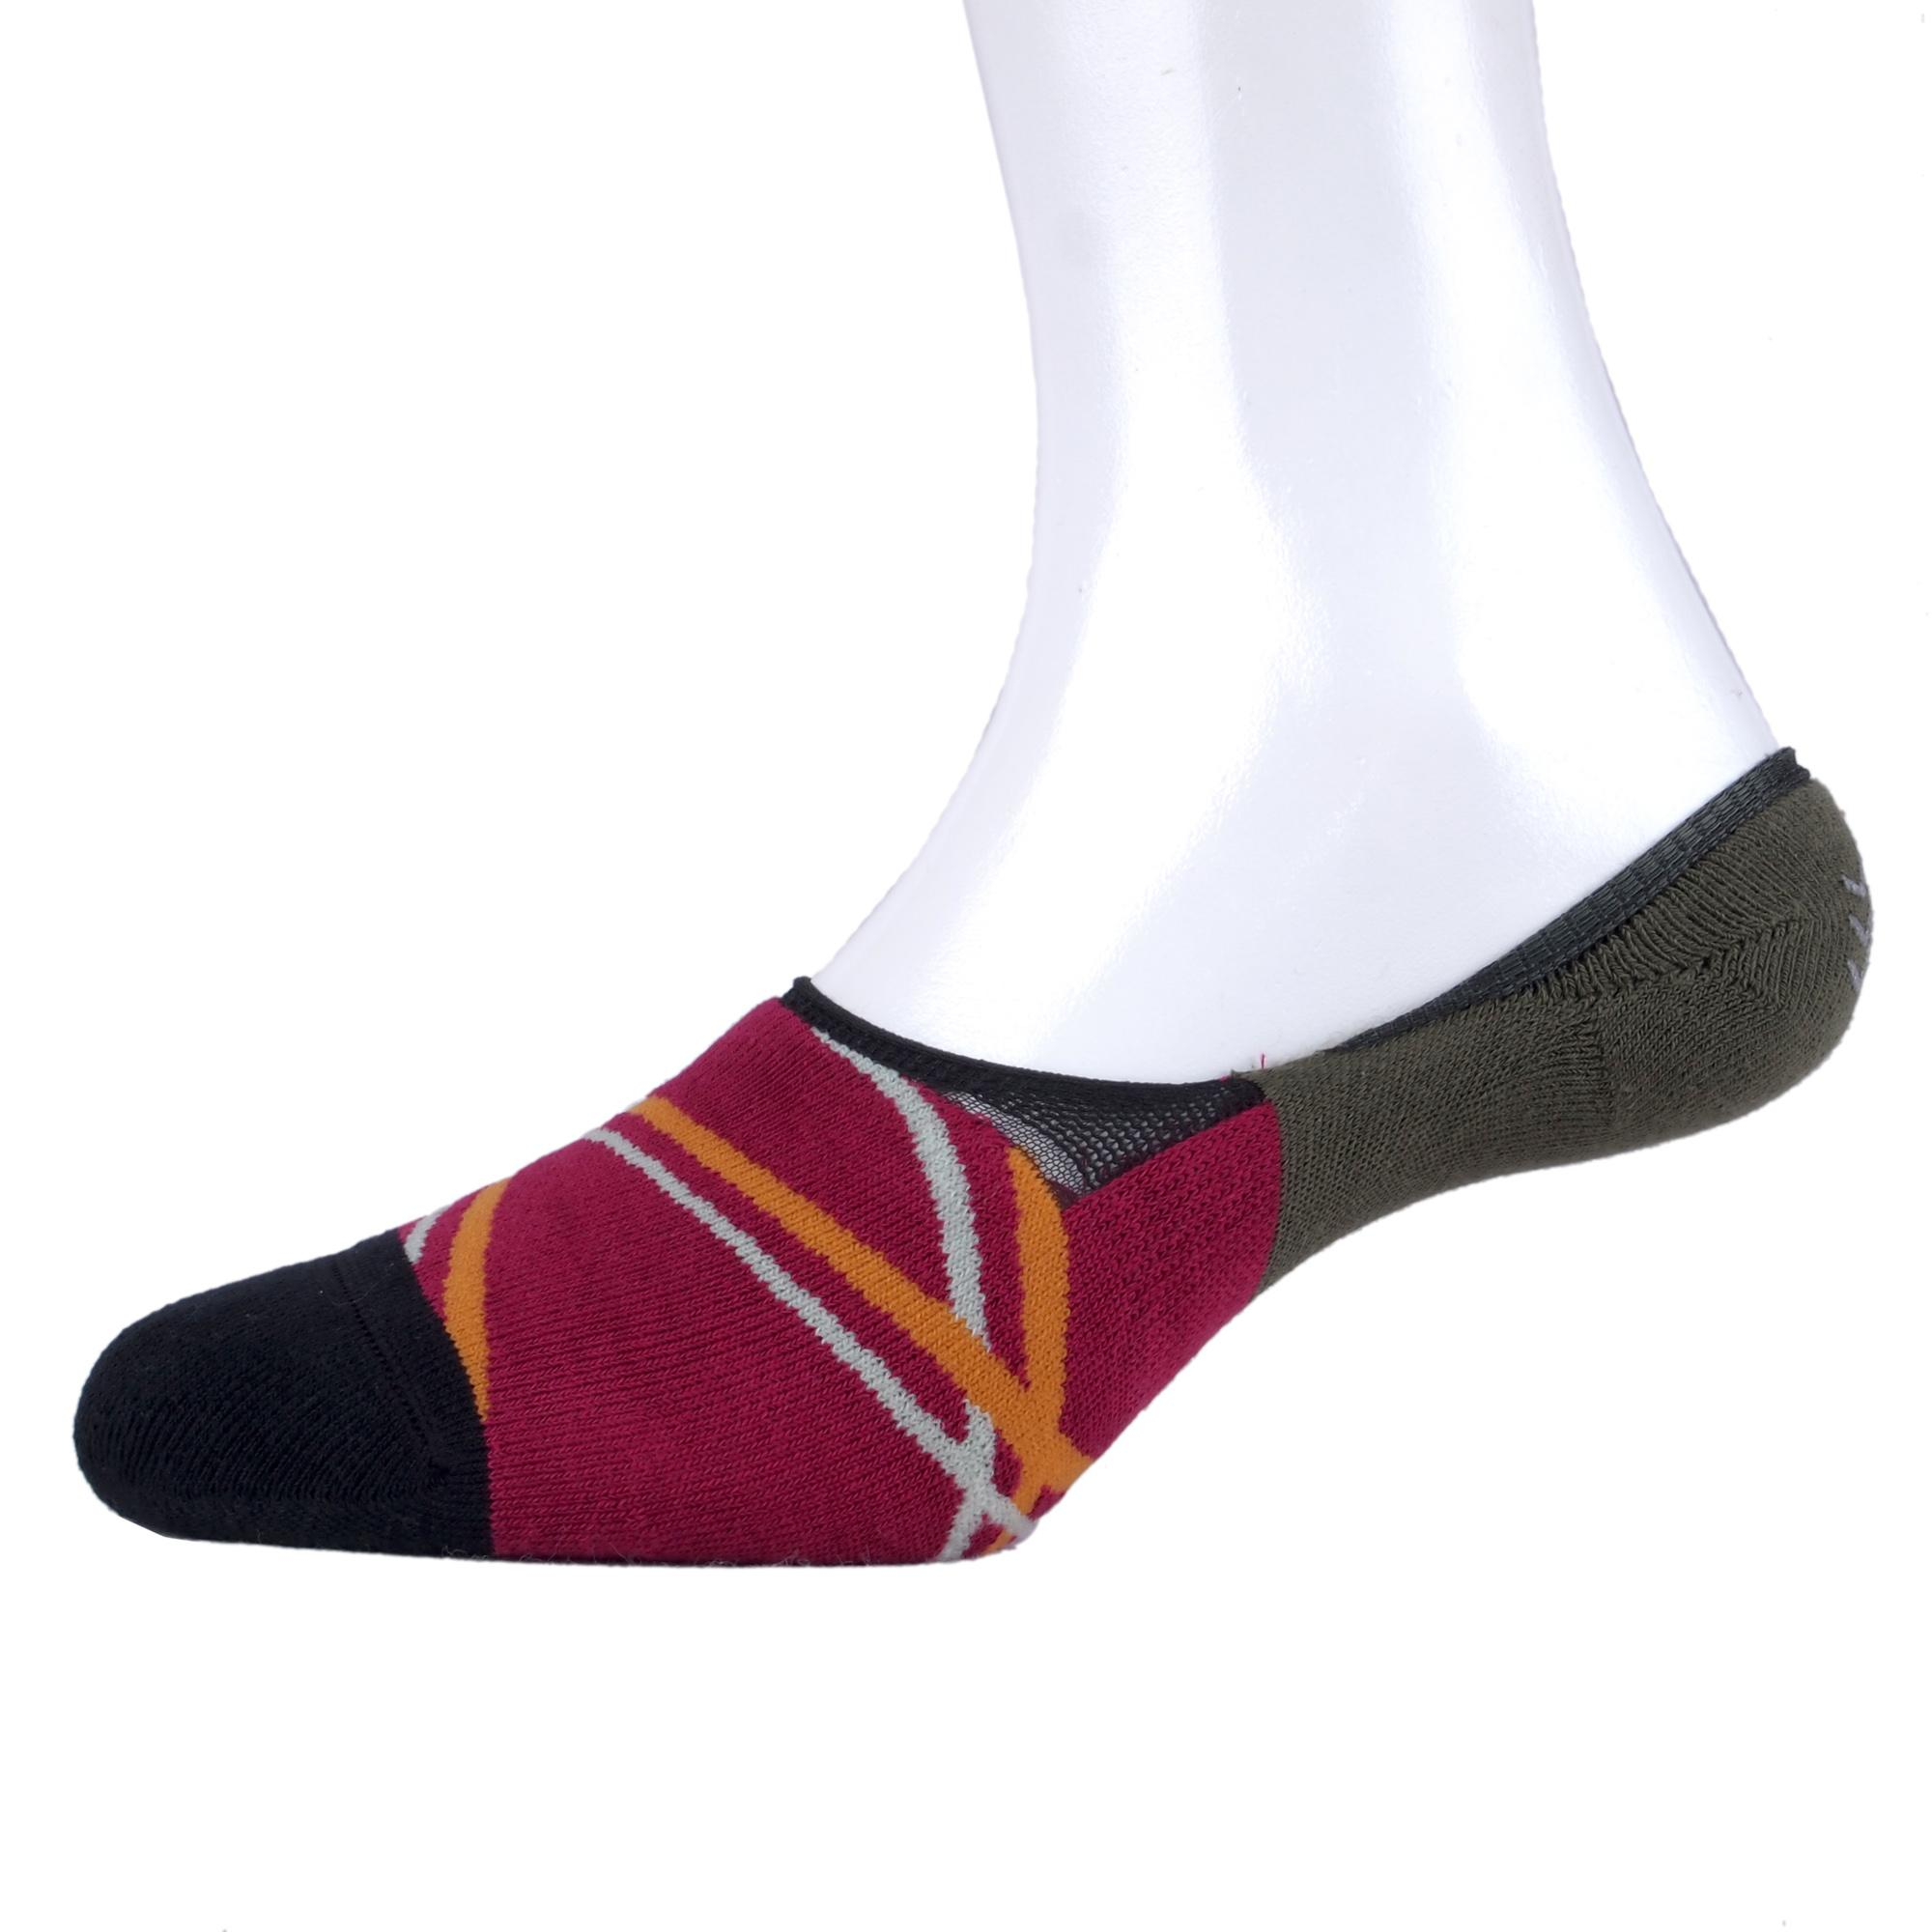 Kaos Kaki Marel Socks Double Lines Red Dark Green Sock Cran Berry/Primal Green